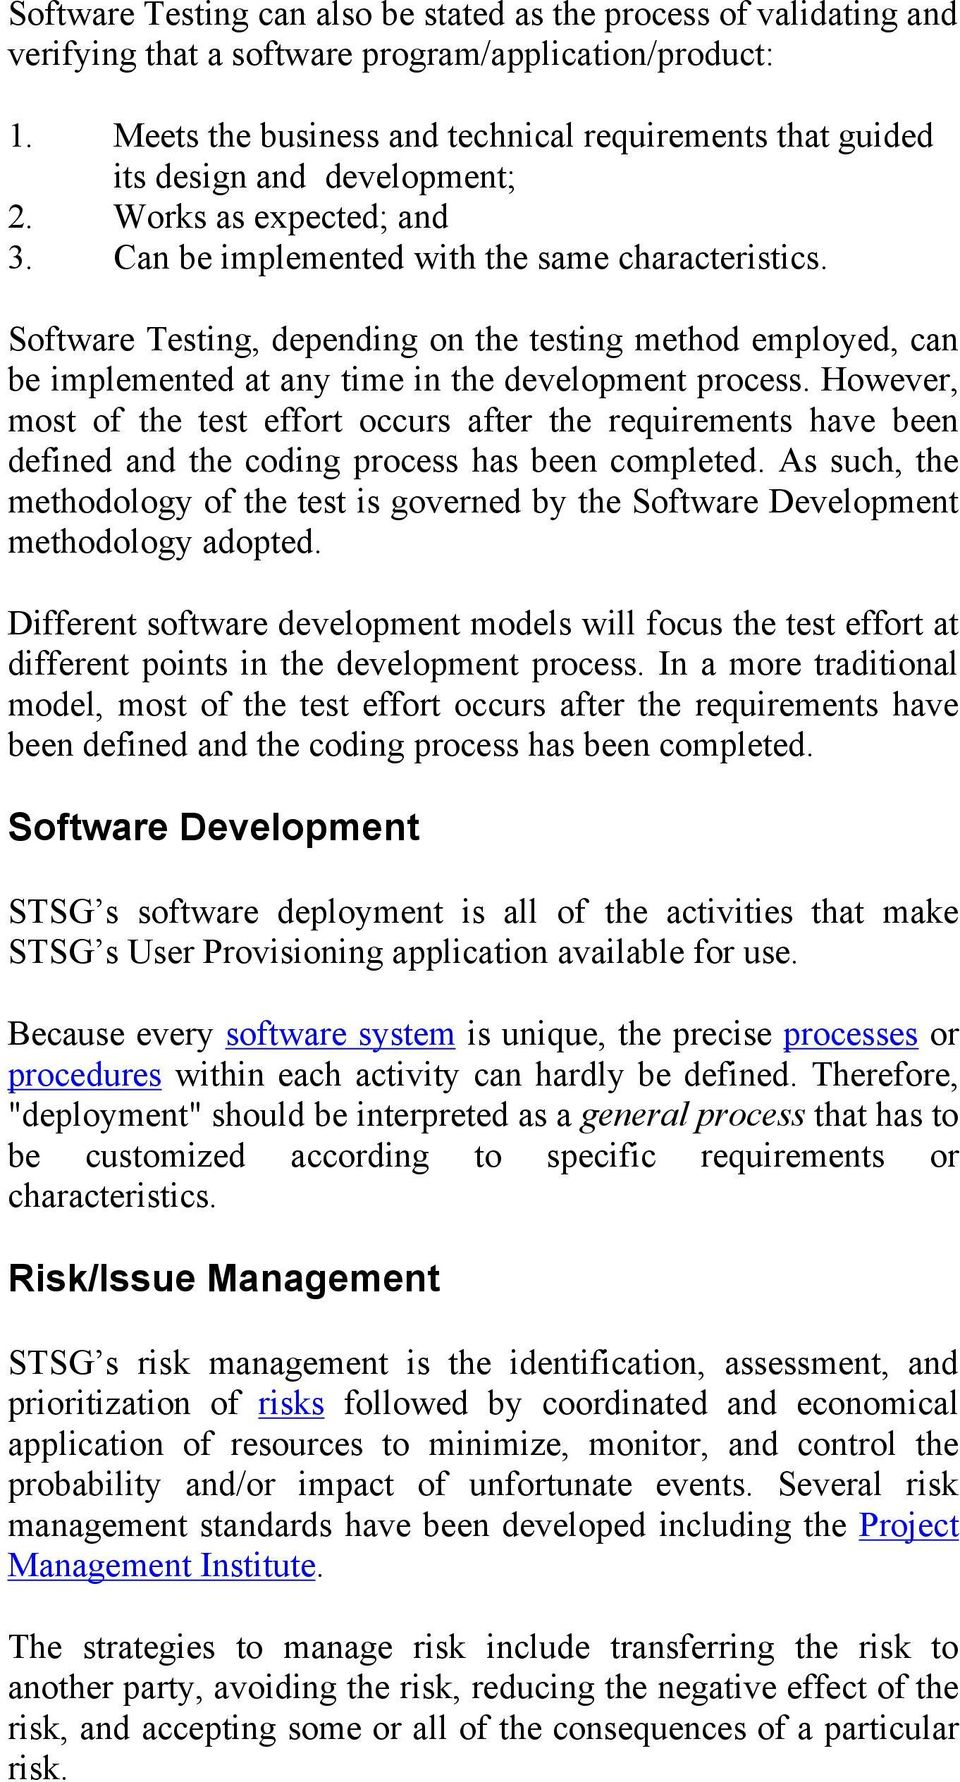 Software Testing, depending on the testing method employed, can be implemented at any time in the development process.